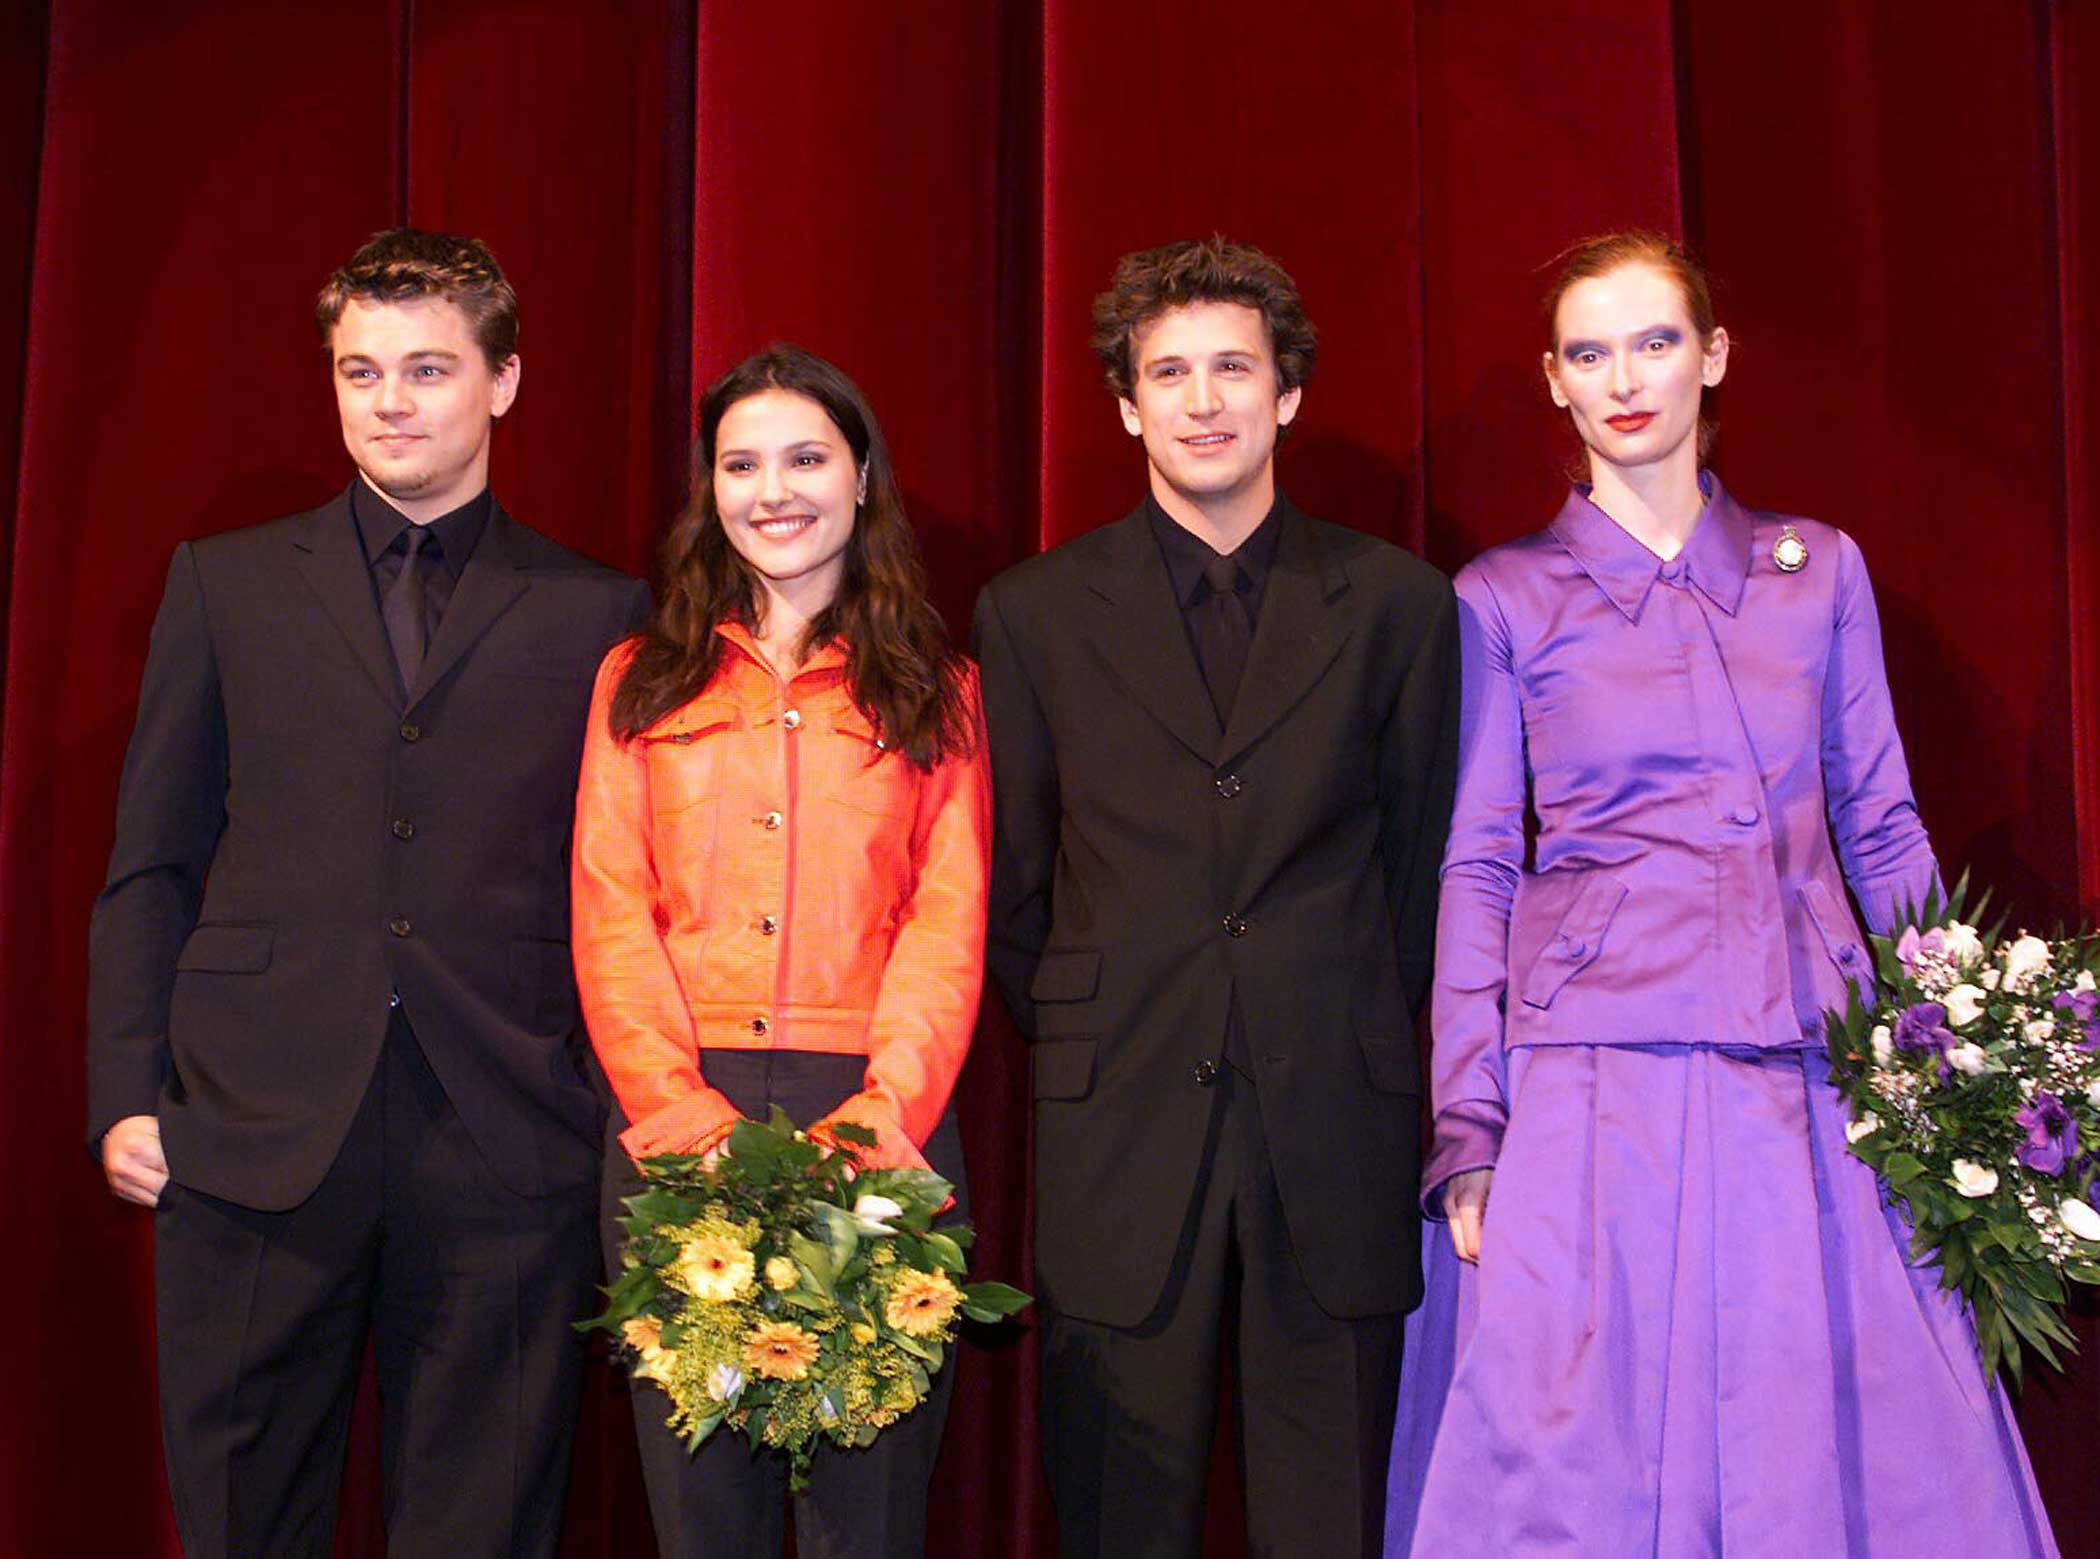 From left: Leonardo Dicaprio, Virginie Ledoyen, Guillaume Canet, and Tilda Swinton at the premiere of The Beach in Berlin on Feb 13, 2000.